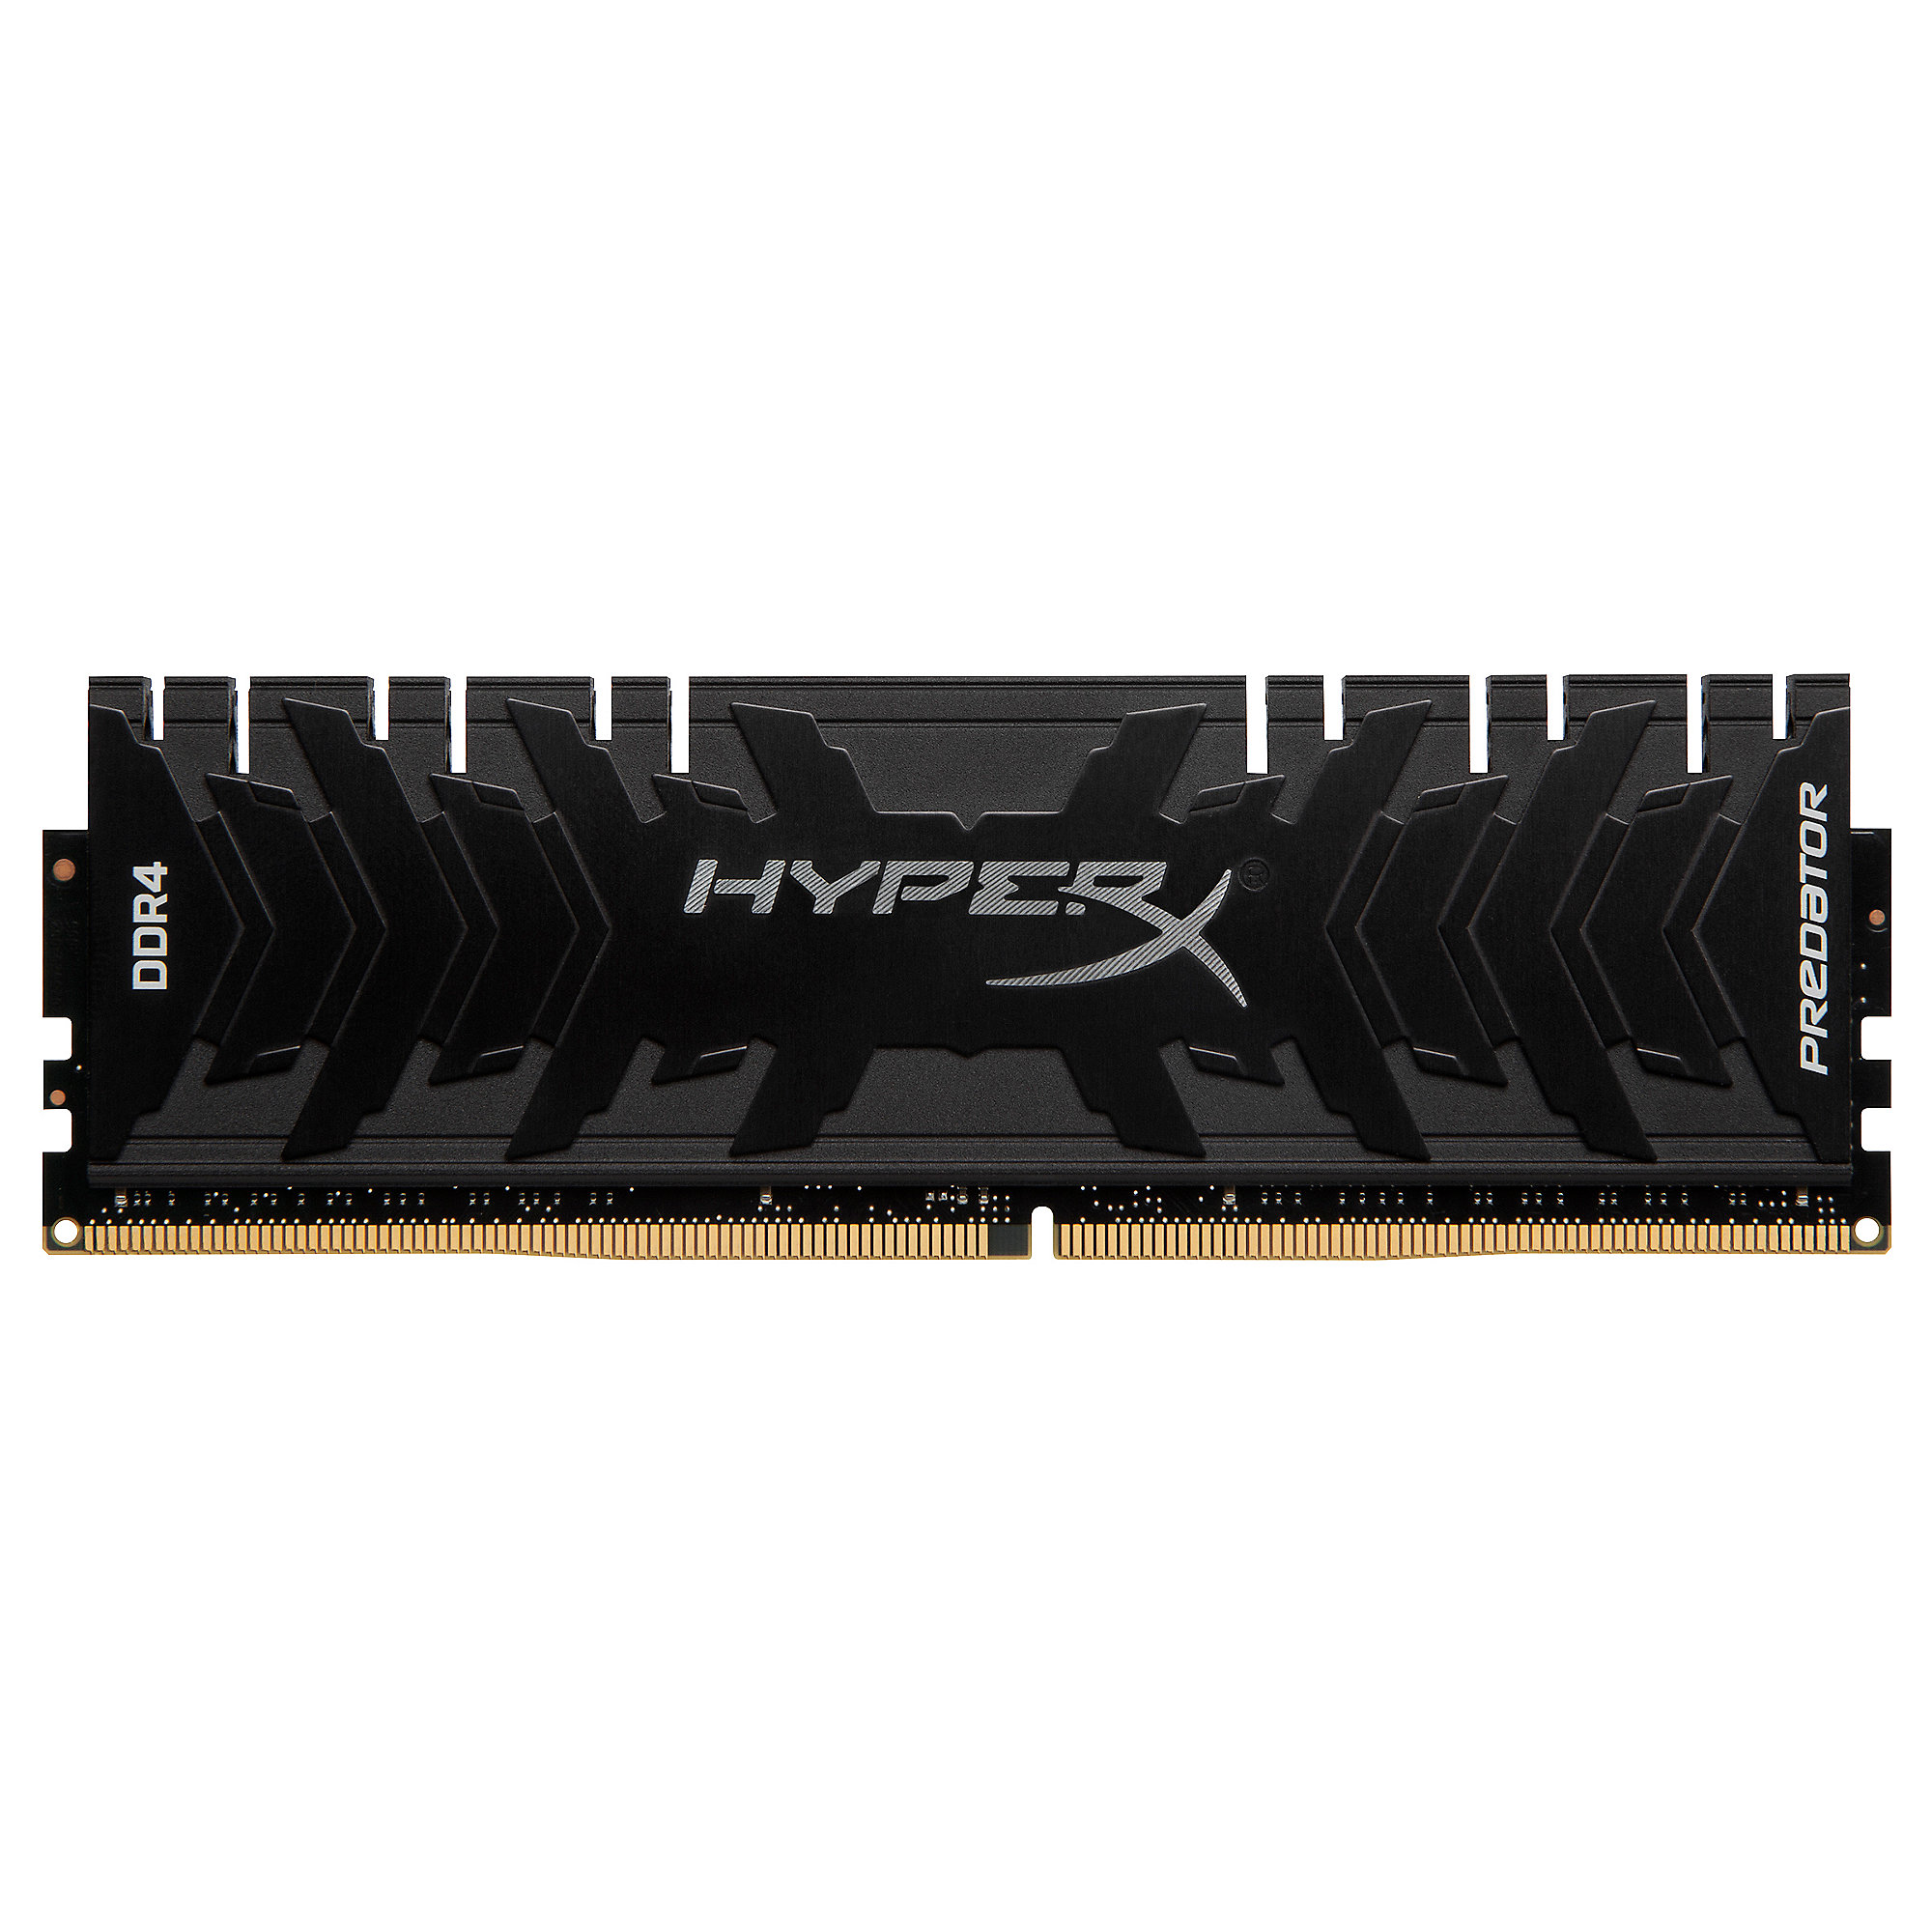 16GB (2x8GB) HyperX Predator DDR4-2400 CL12 RAM Kit